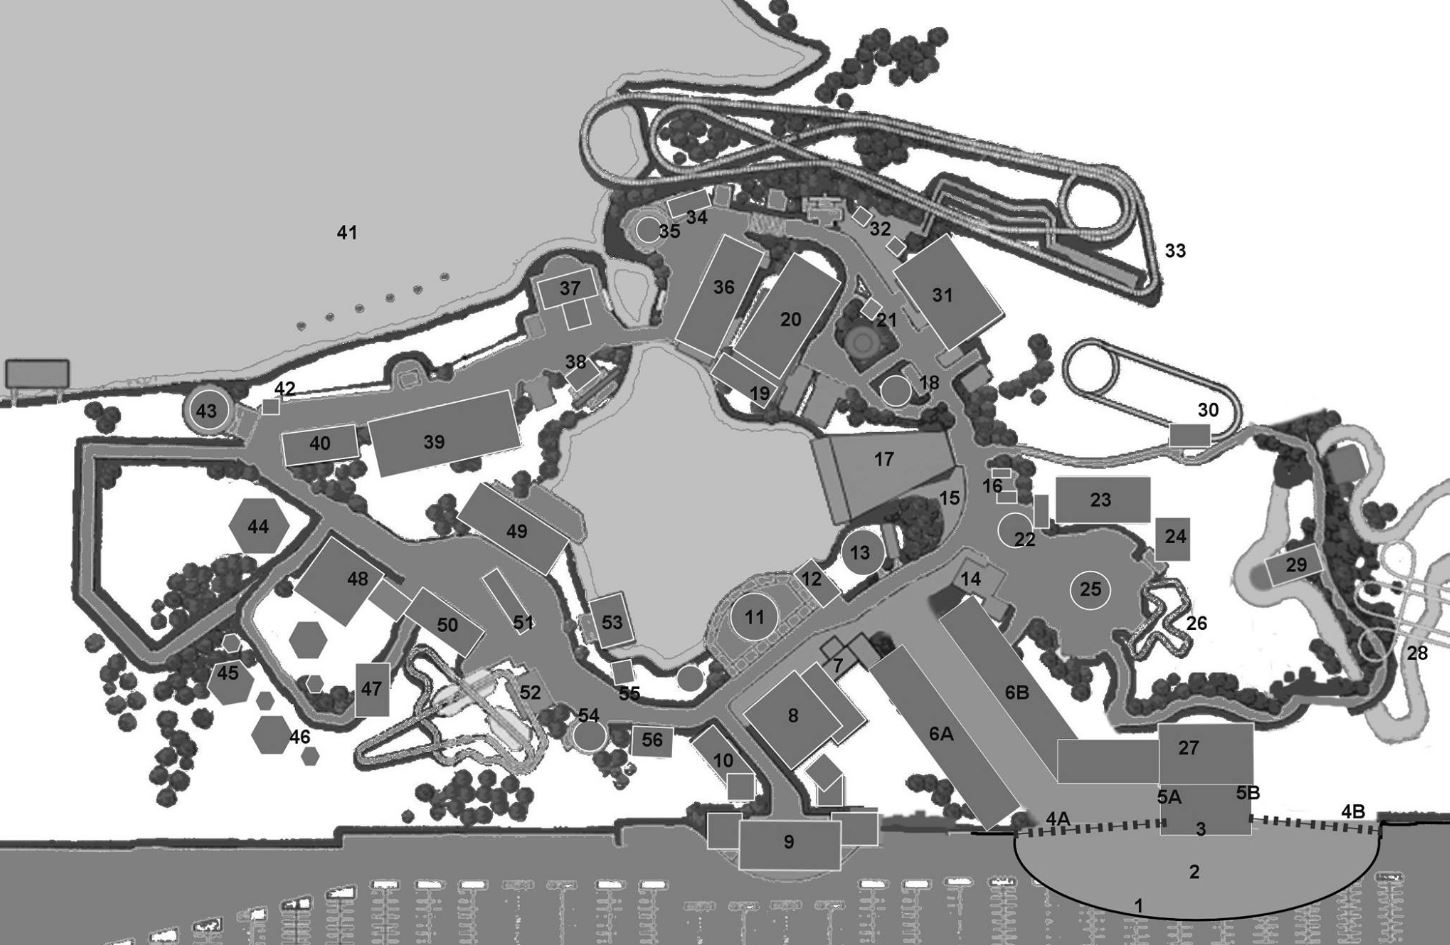 Jazzland Team Aiming to Reopen Six Flags New Orleans - Coaster101